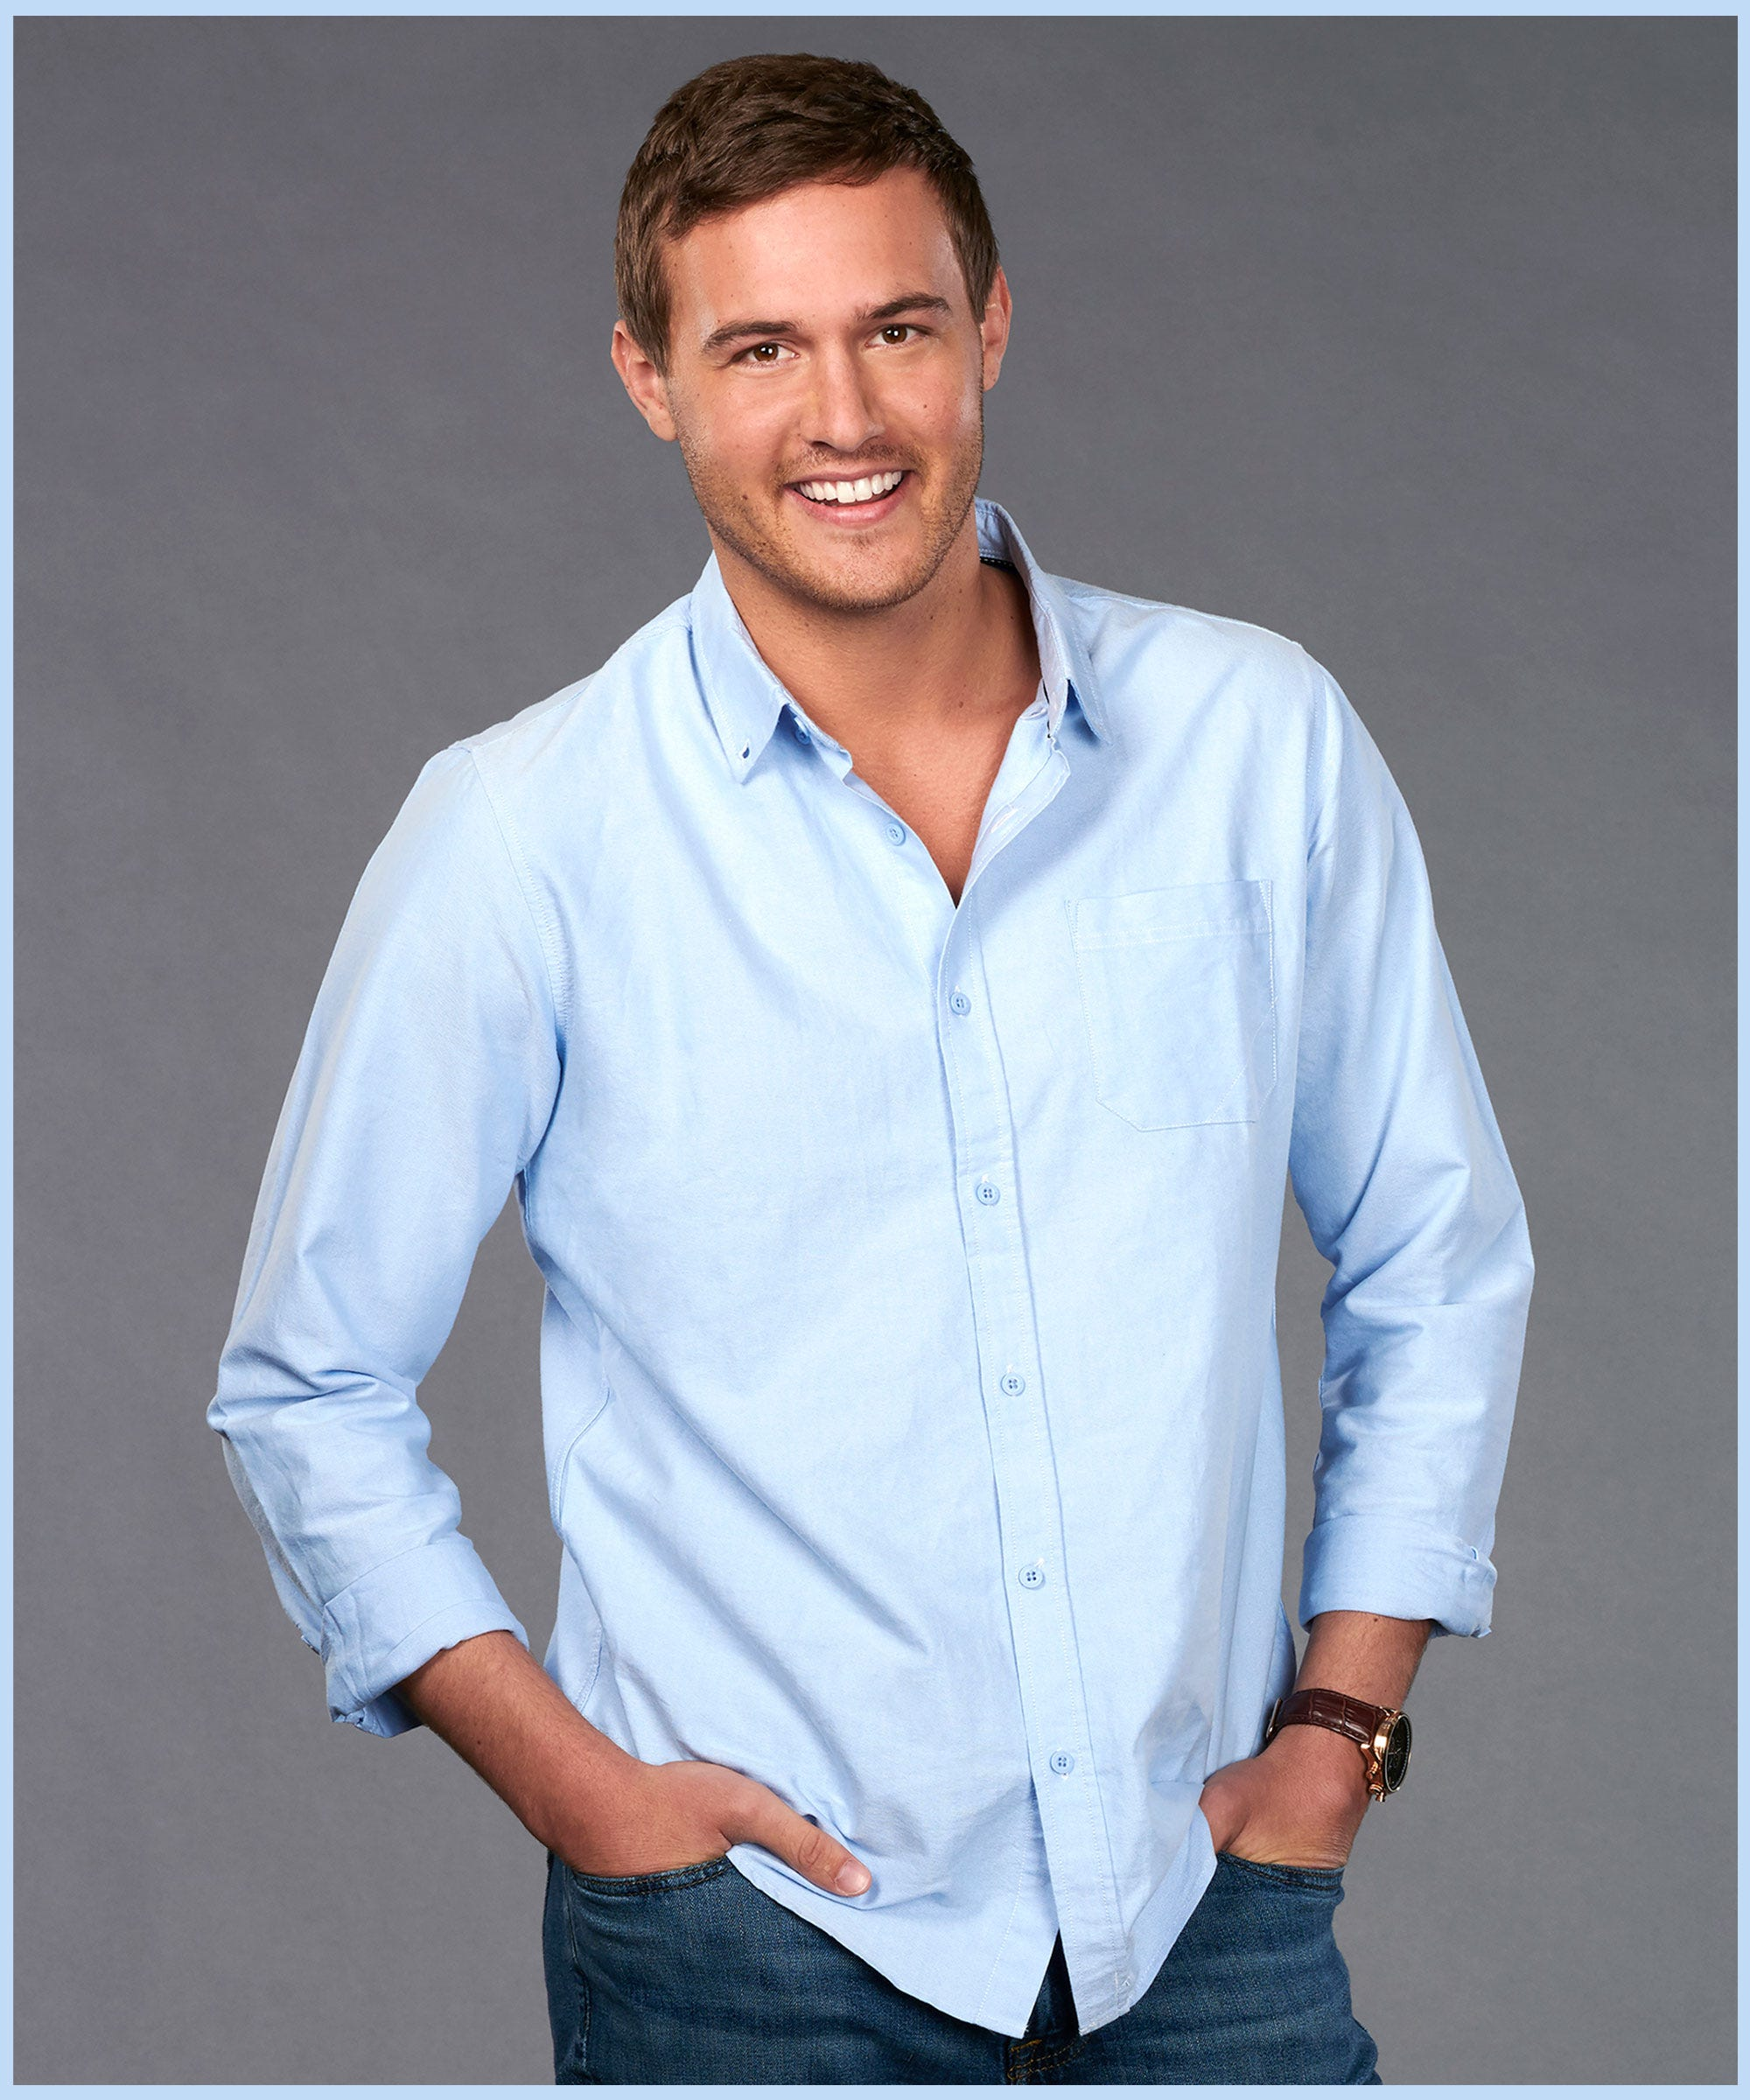 After The Bachelorette, Peter Weber Is Being, Well, Remarkably Normal